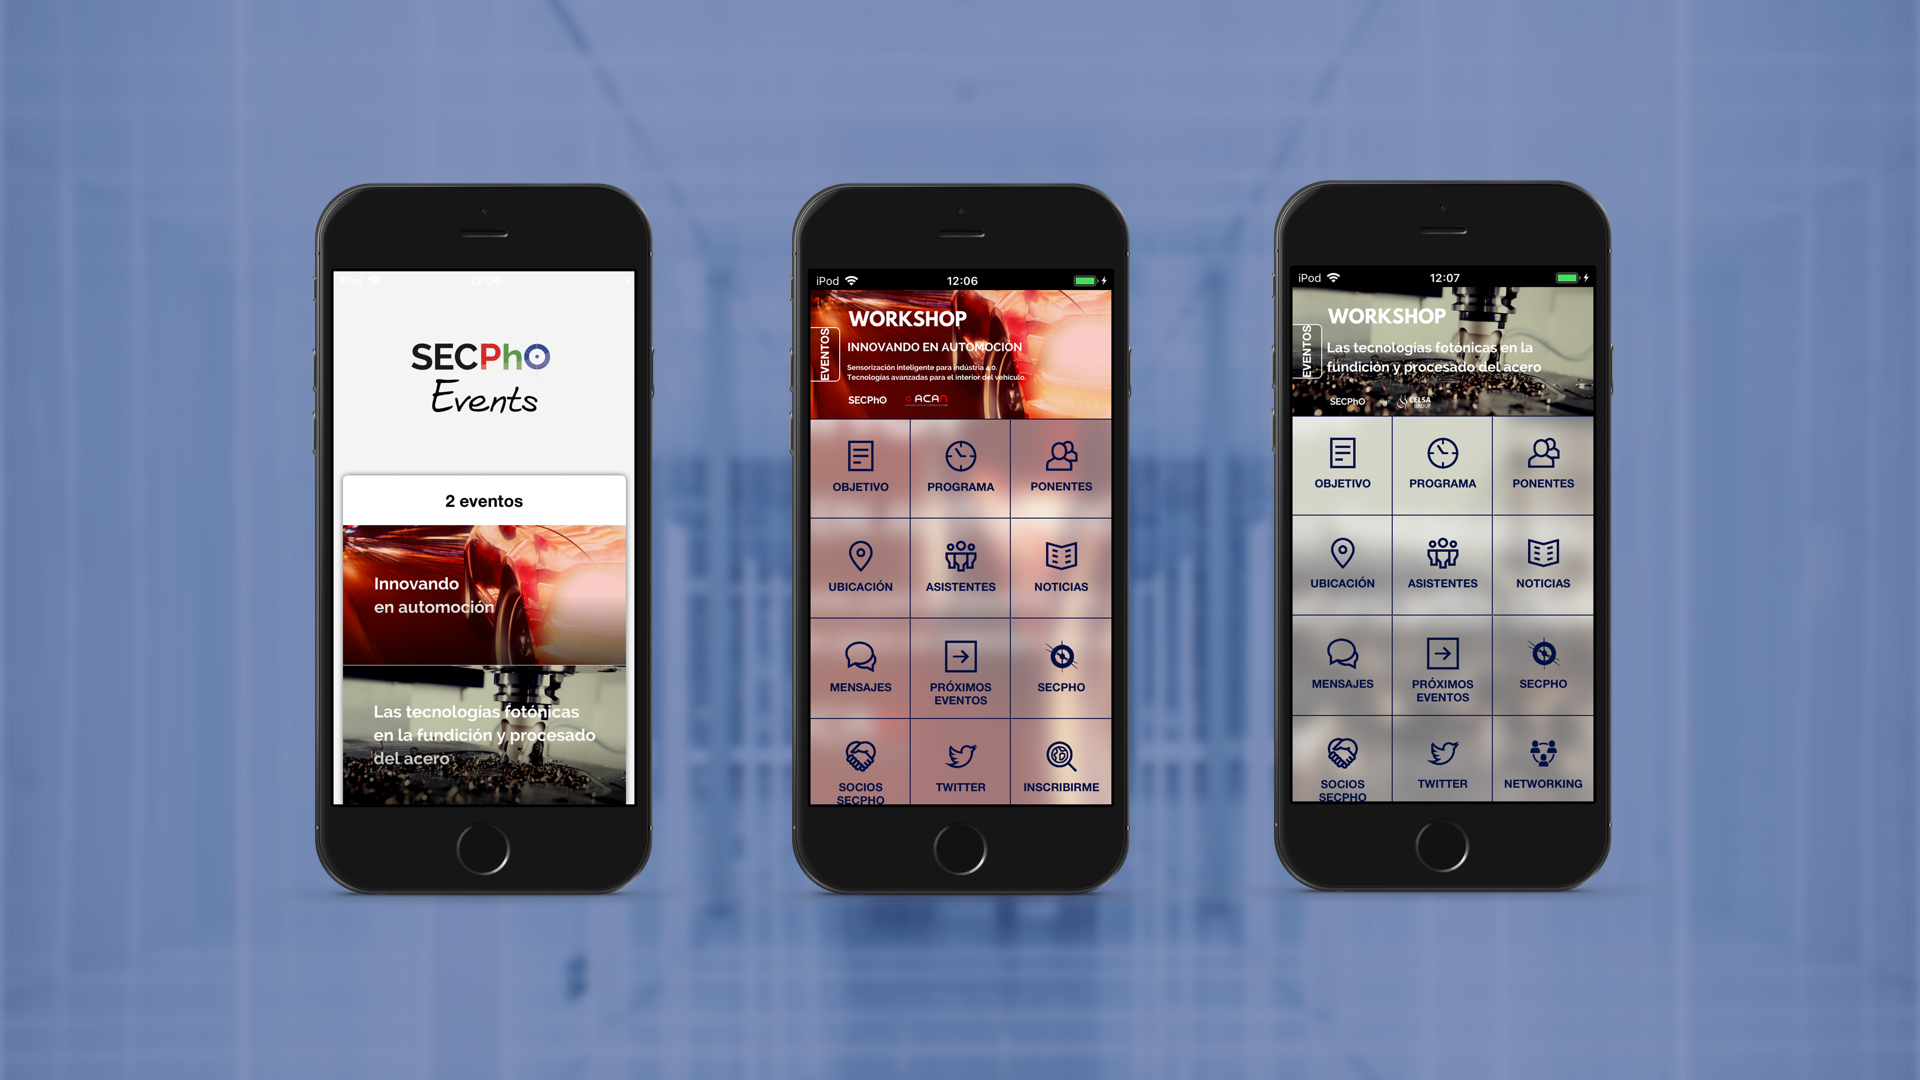 Mobile App of SECPhO Events (Android App and iOS App)